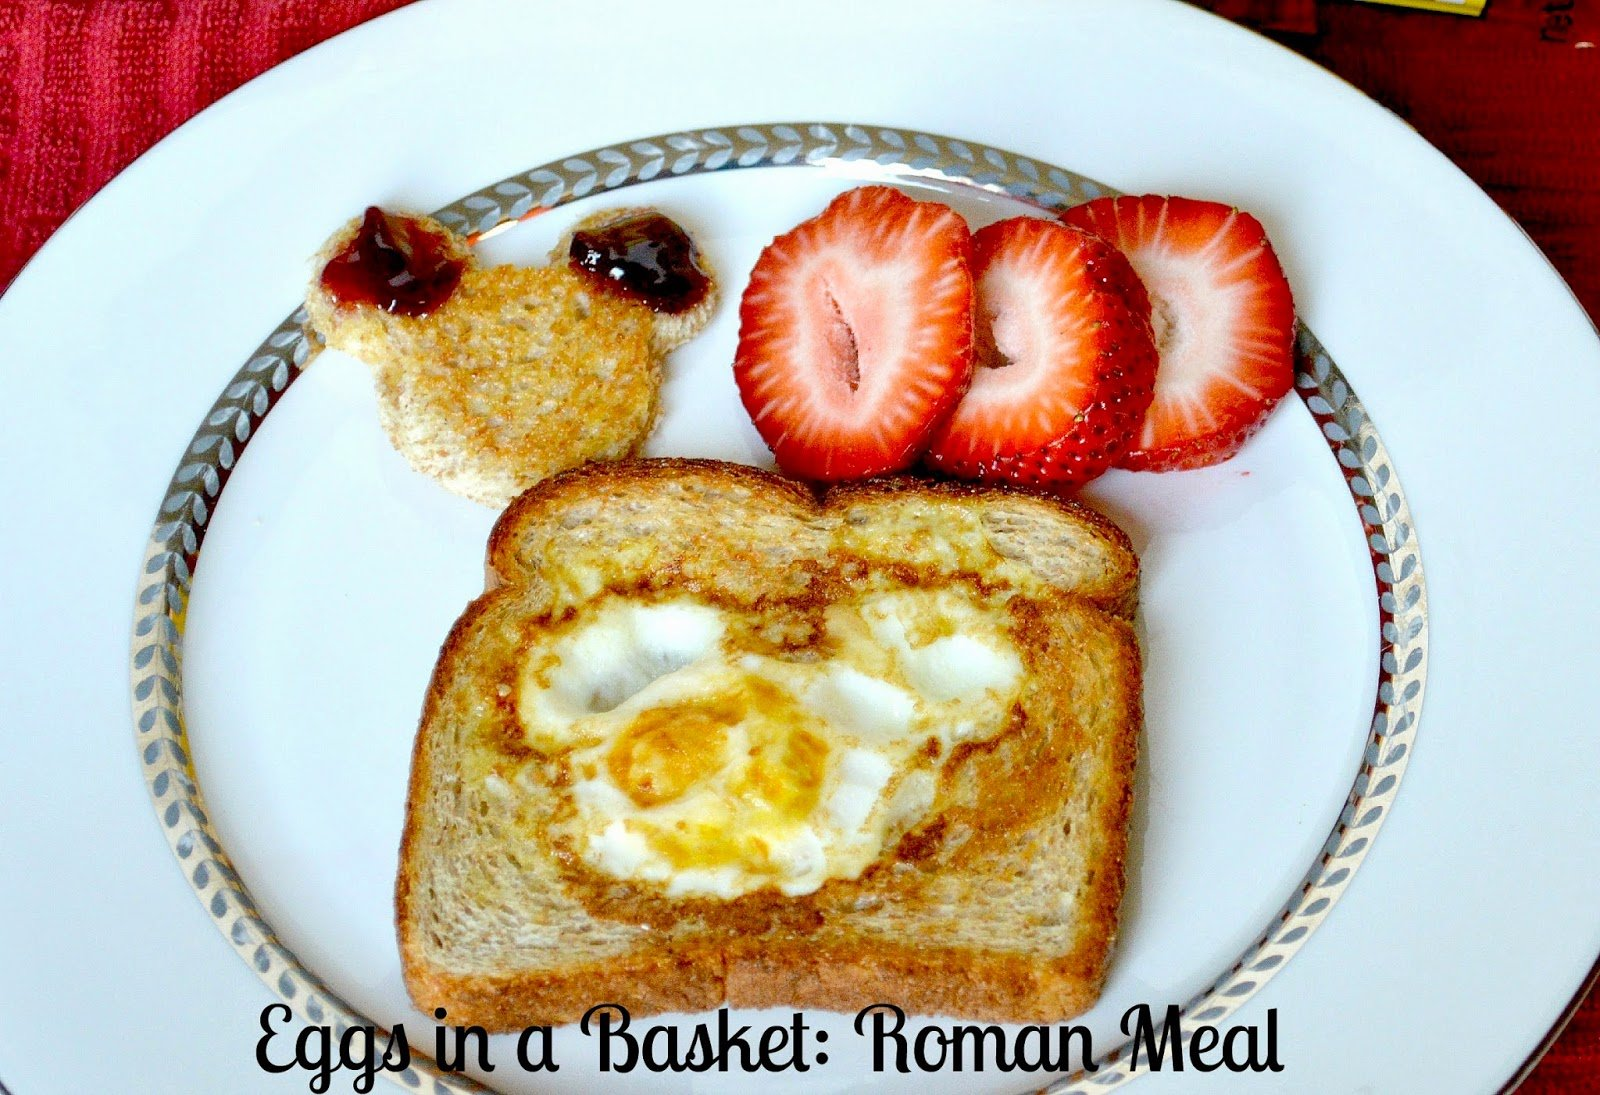 Easy eggs in a basket recipe with roman meal roman meal i participated in an influencer activation on behalf of mom central consulting for roman meal i received product samples to facilitate my review and a forumfinder Images